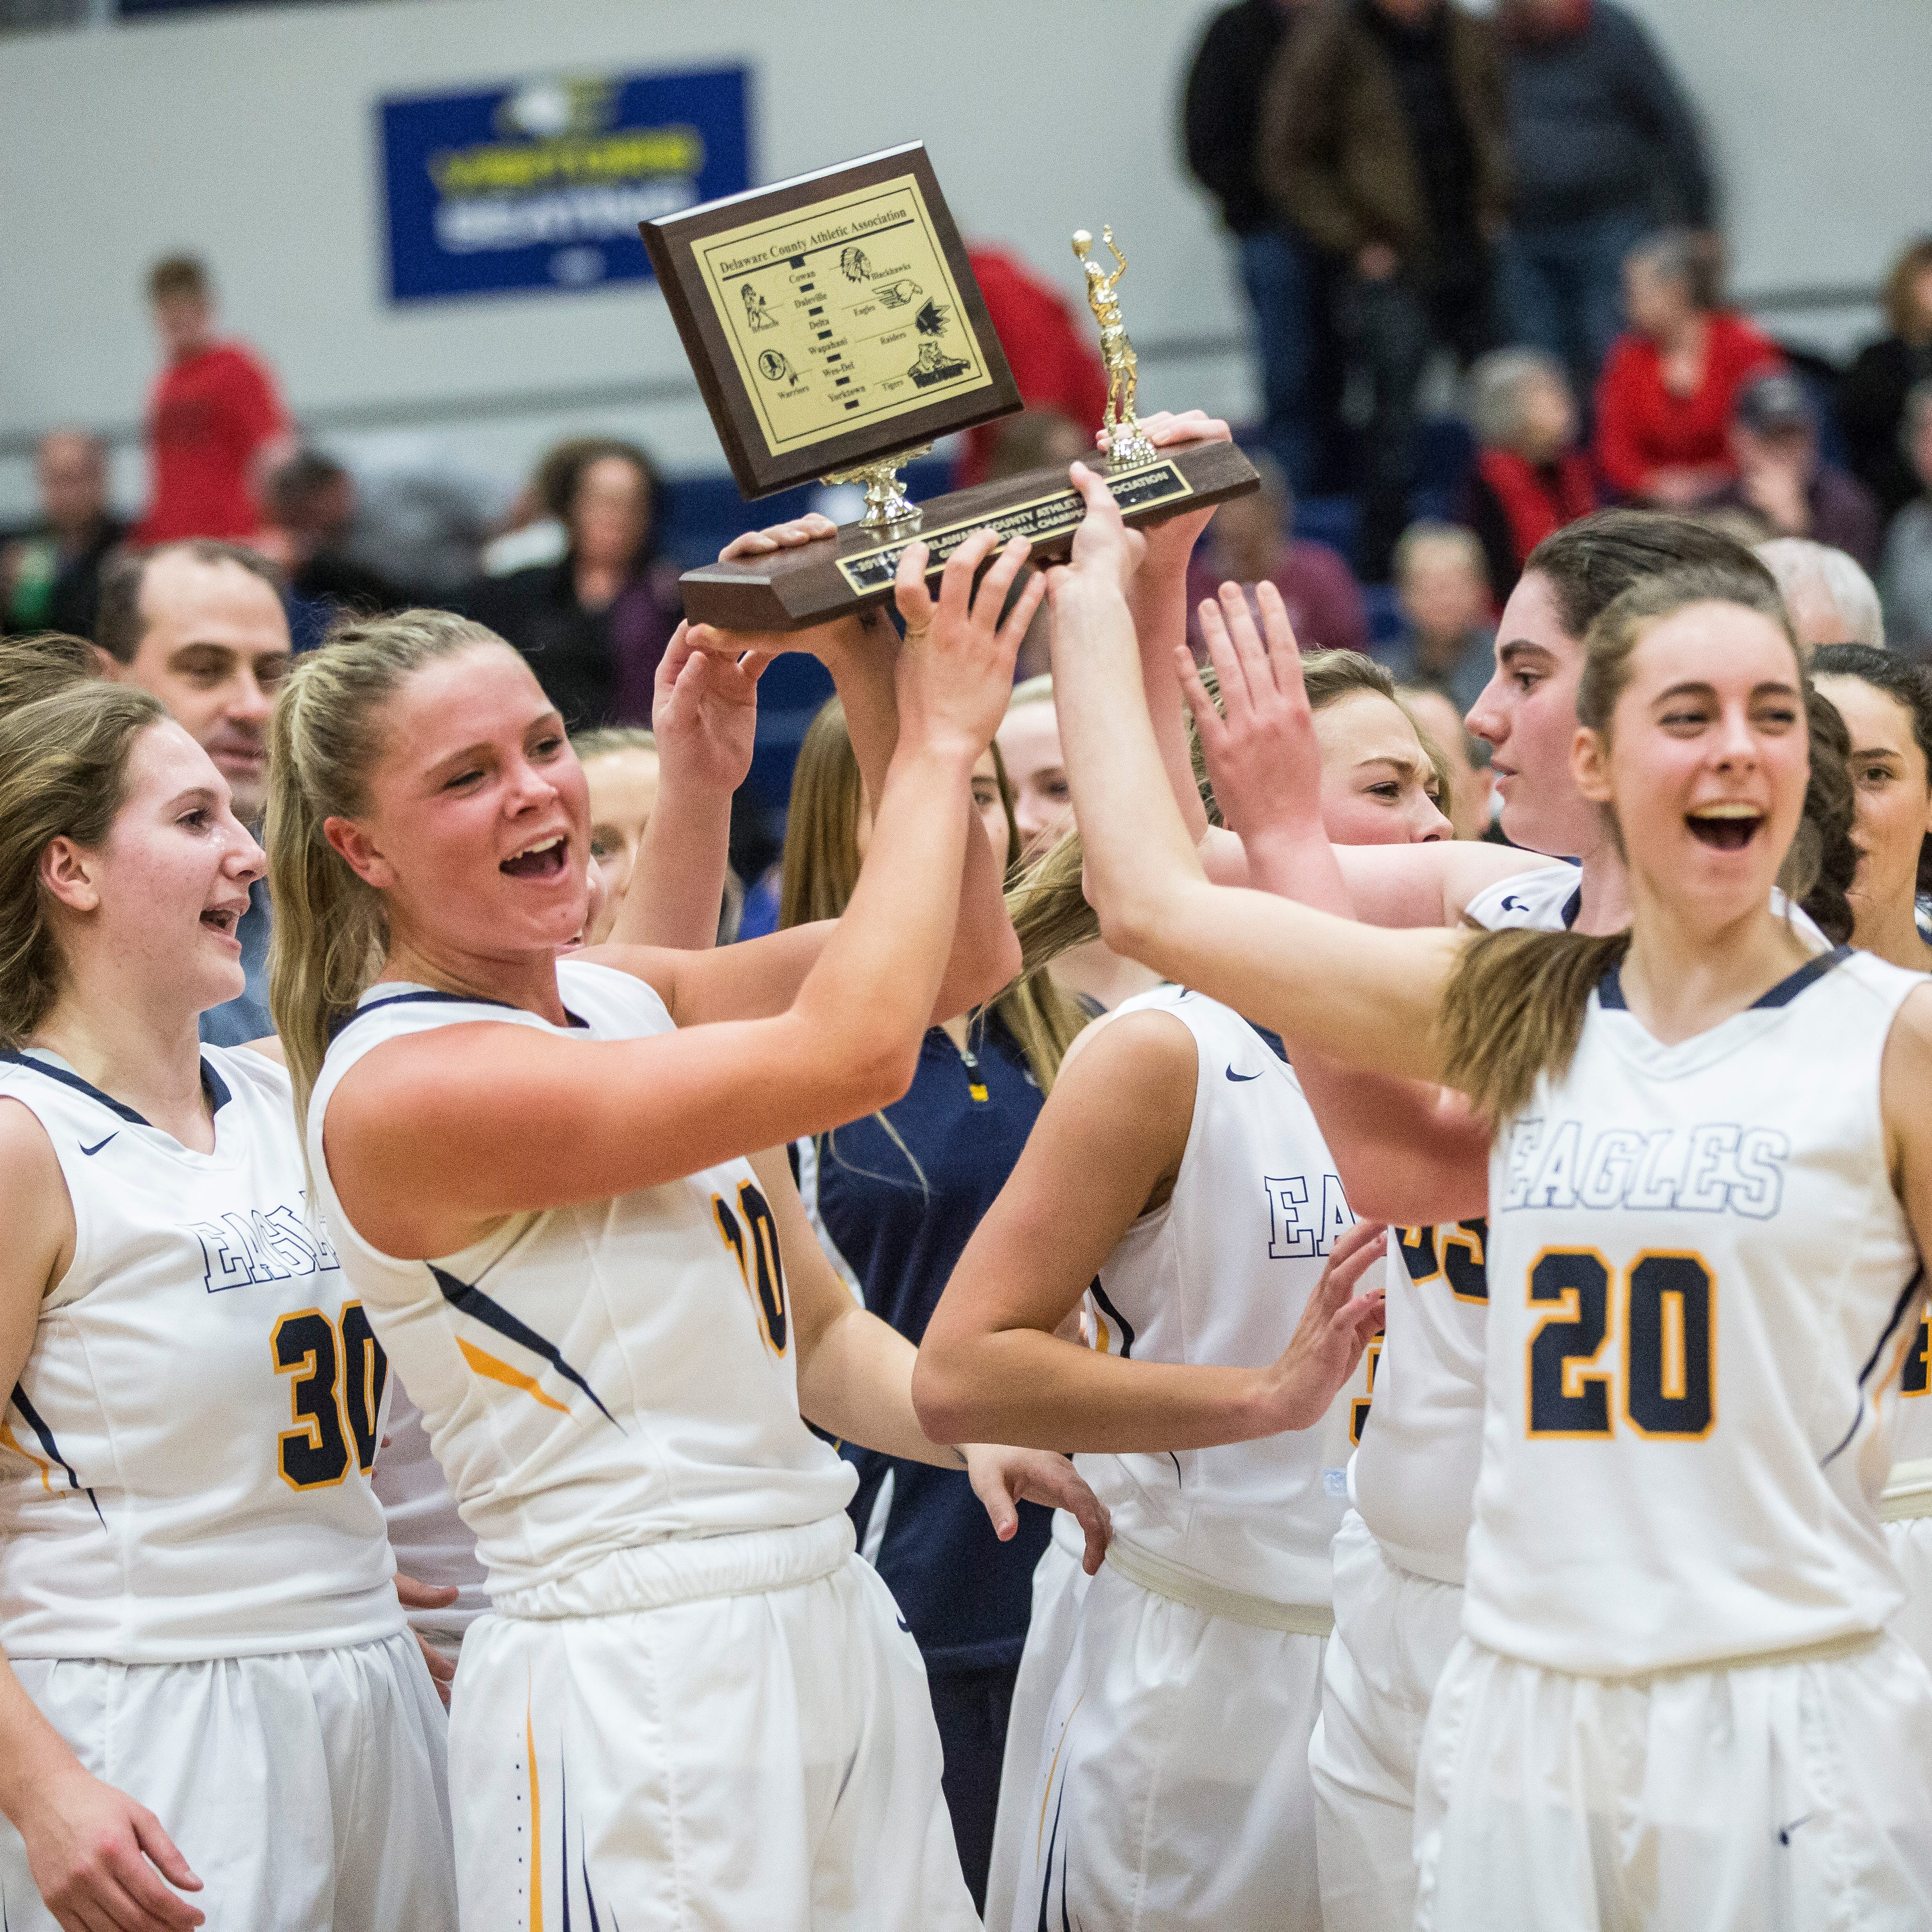 Delta girls win first Delaware County basketball title since 2012